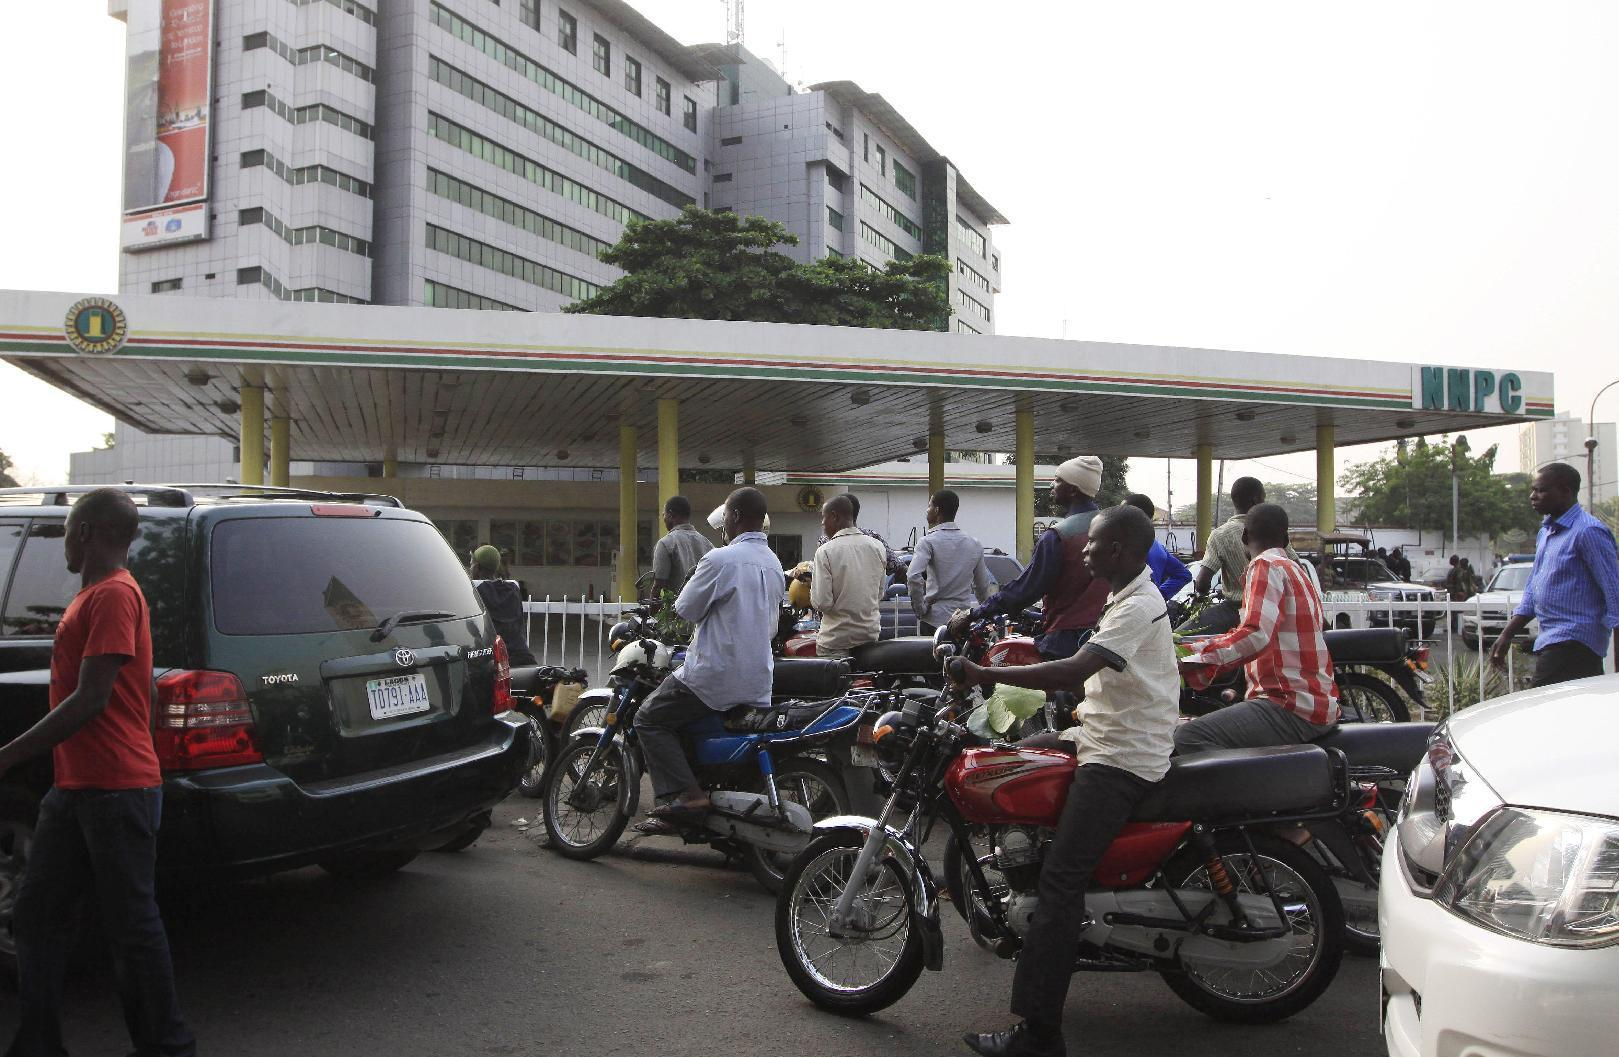 Nigerian cell phone provider needs fuel to prevent shut-down